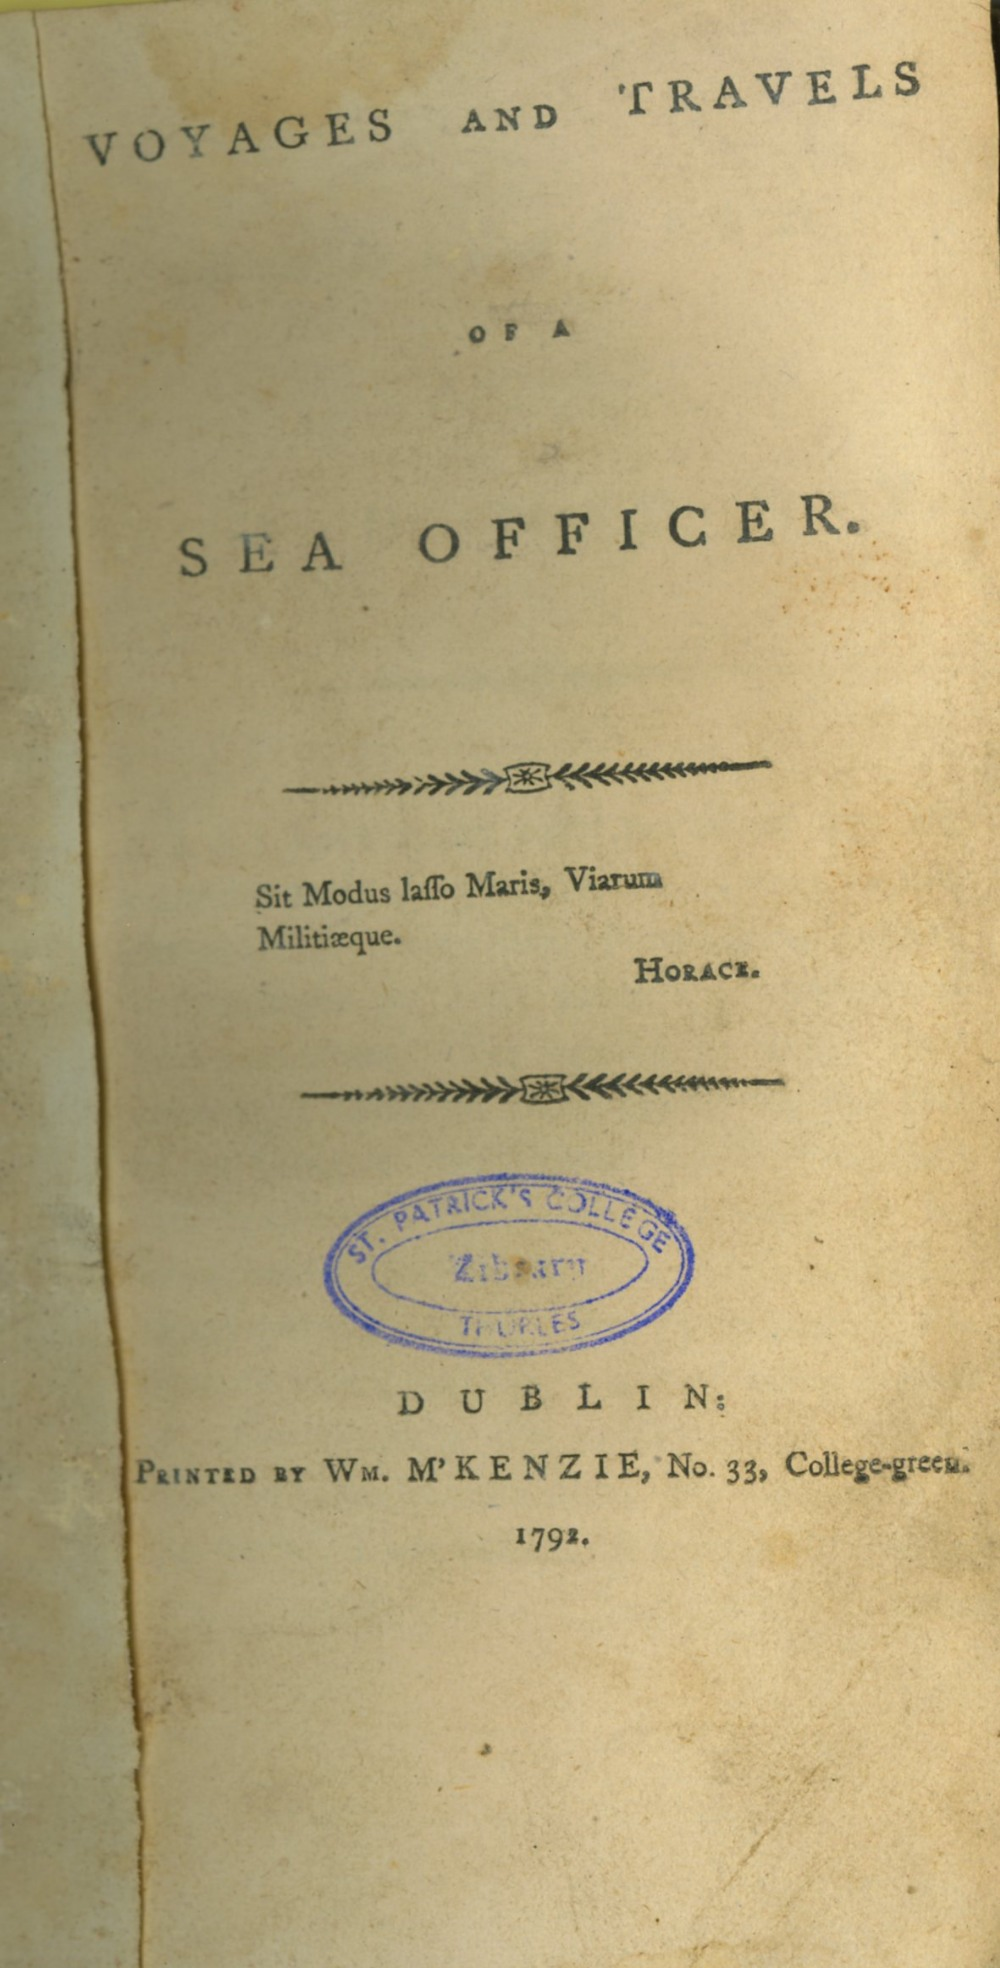 [Vernon (Francis V.)] Voyages and Travels of a Sea Officer, 8vo D. (Wm. M'Kenzie) 1792. First Edn.